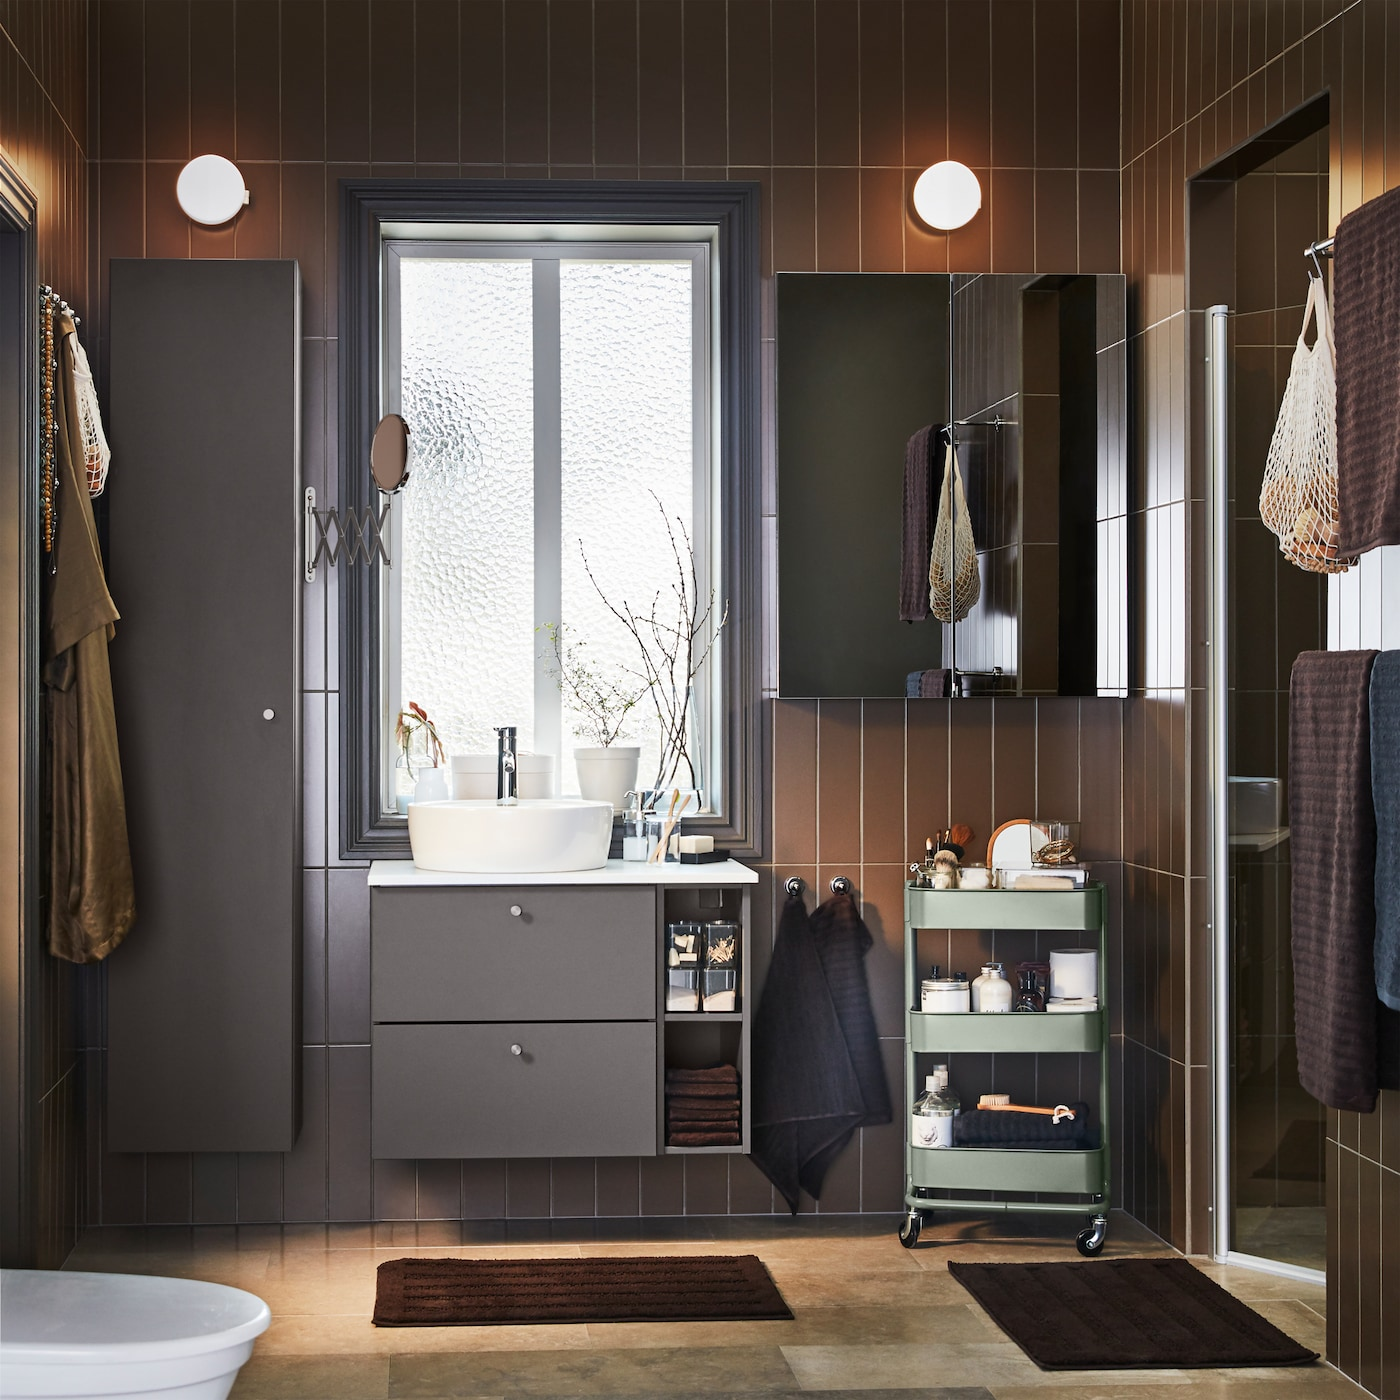 Bathroom inspiration - IKEA